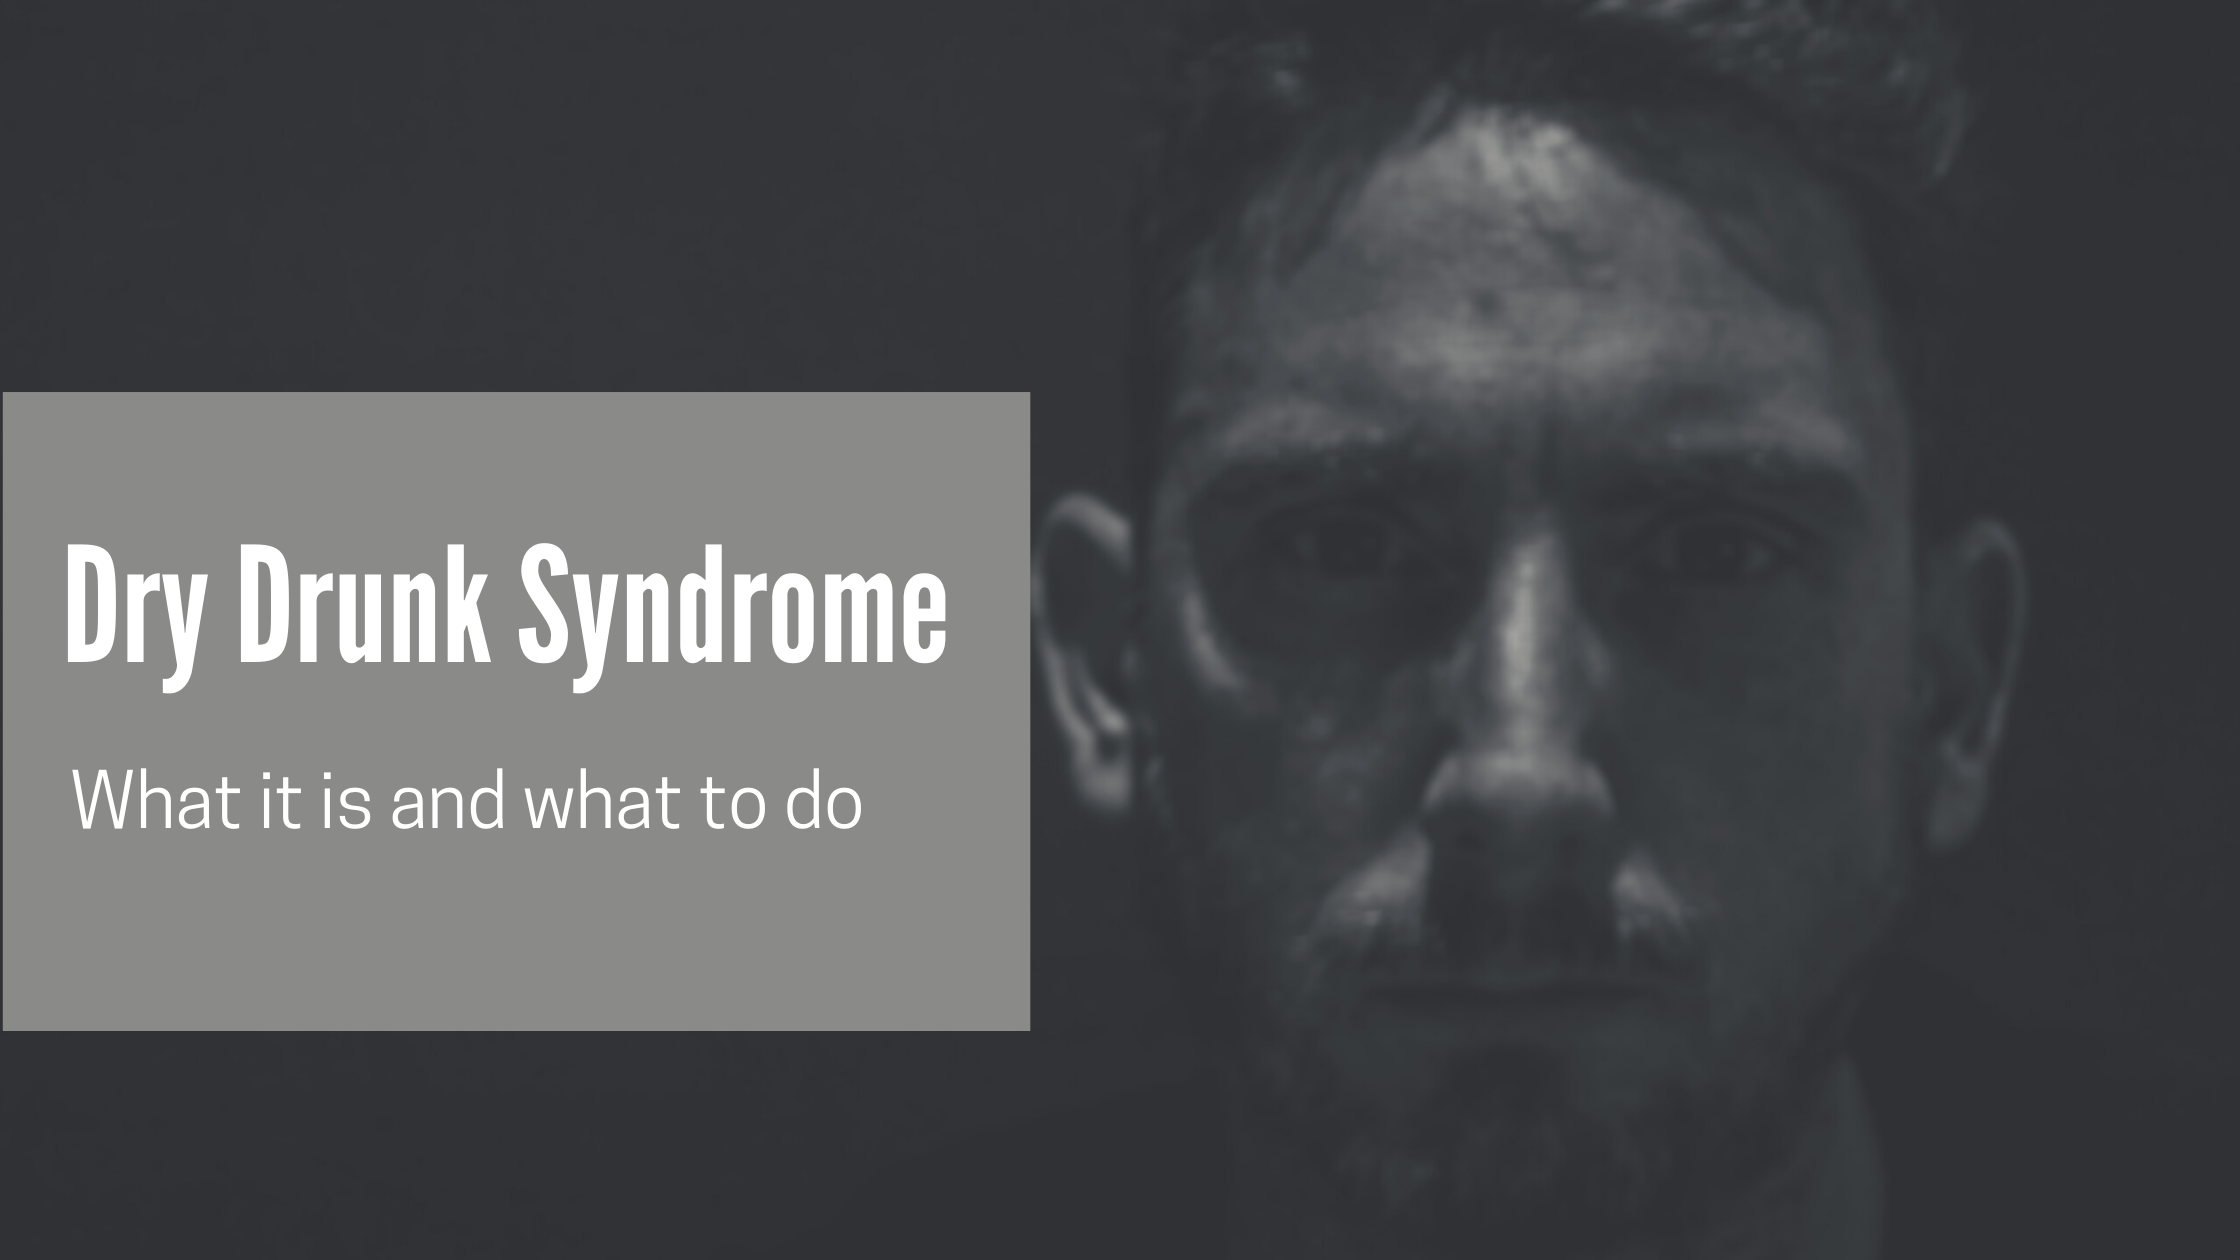 A GUIDE TO DRY DRUNK SYNDROME